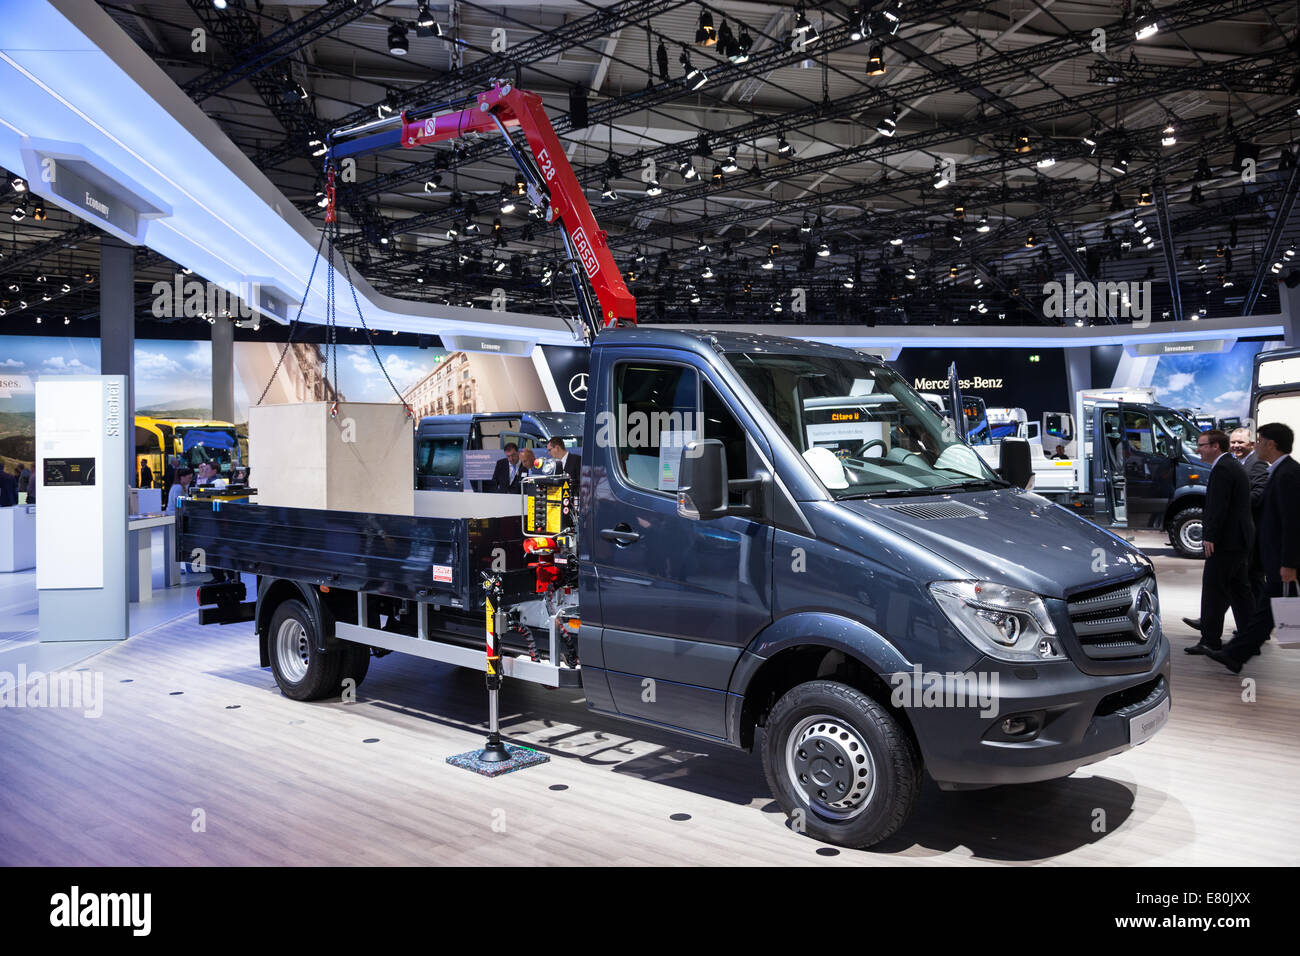 Mercedes Benz Sprinter 516 CDI at the 65th IAA Commercial Vehicles 2014 in Hannover, Germany - Stock Image